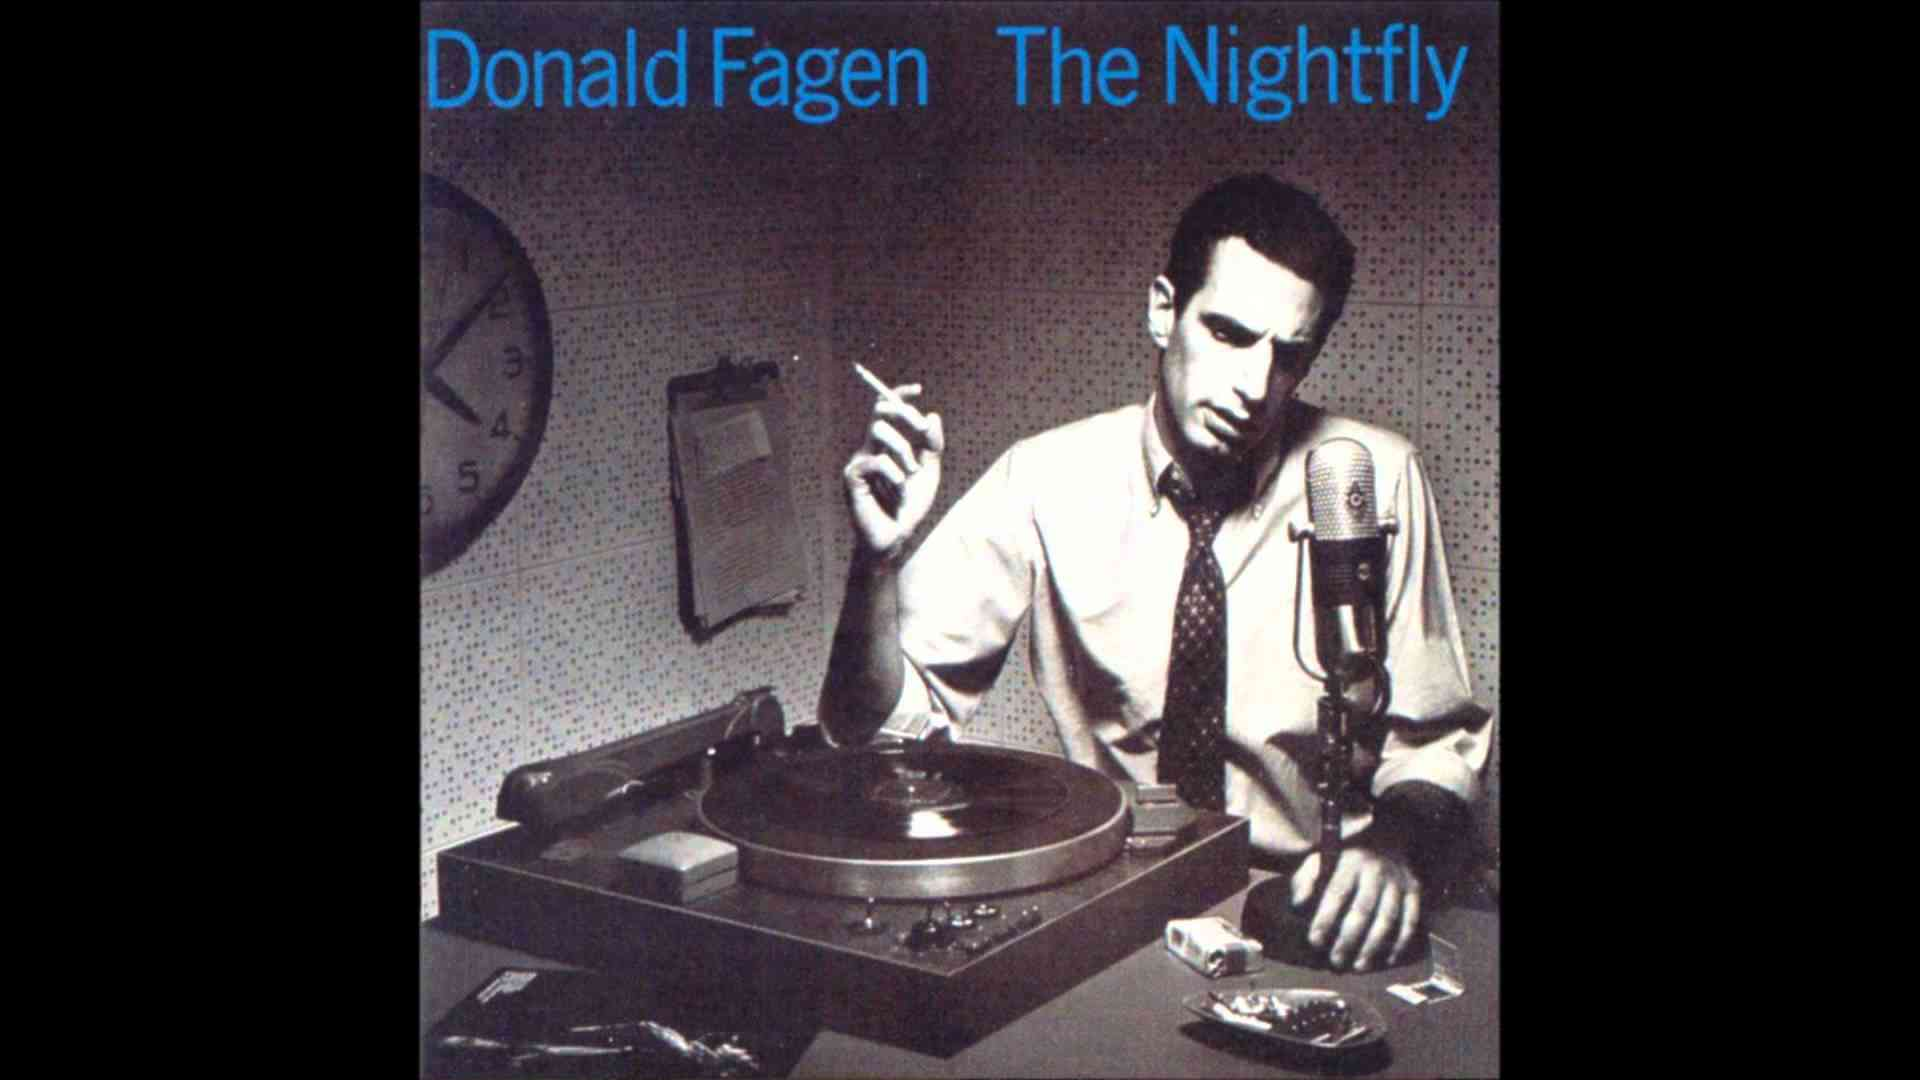 Donald Fagen - I.G.Y. (What a Beautiful World) (HQ) - YouTube